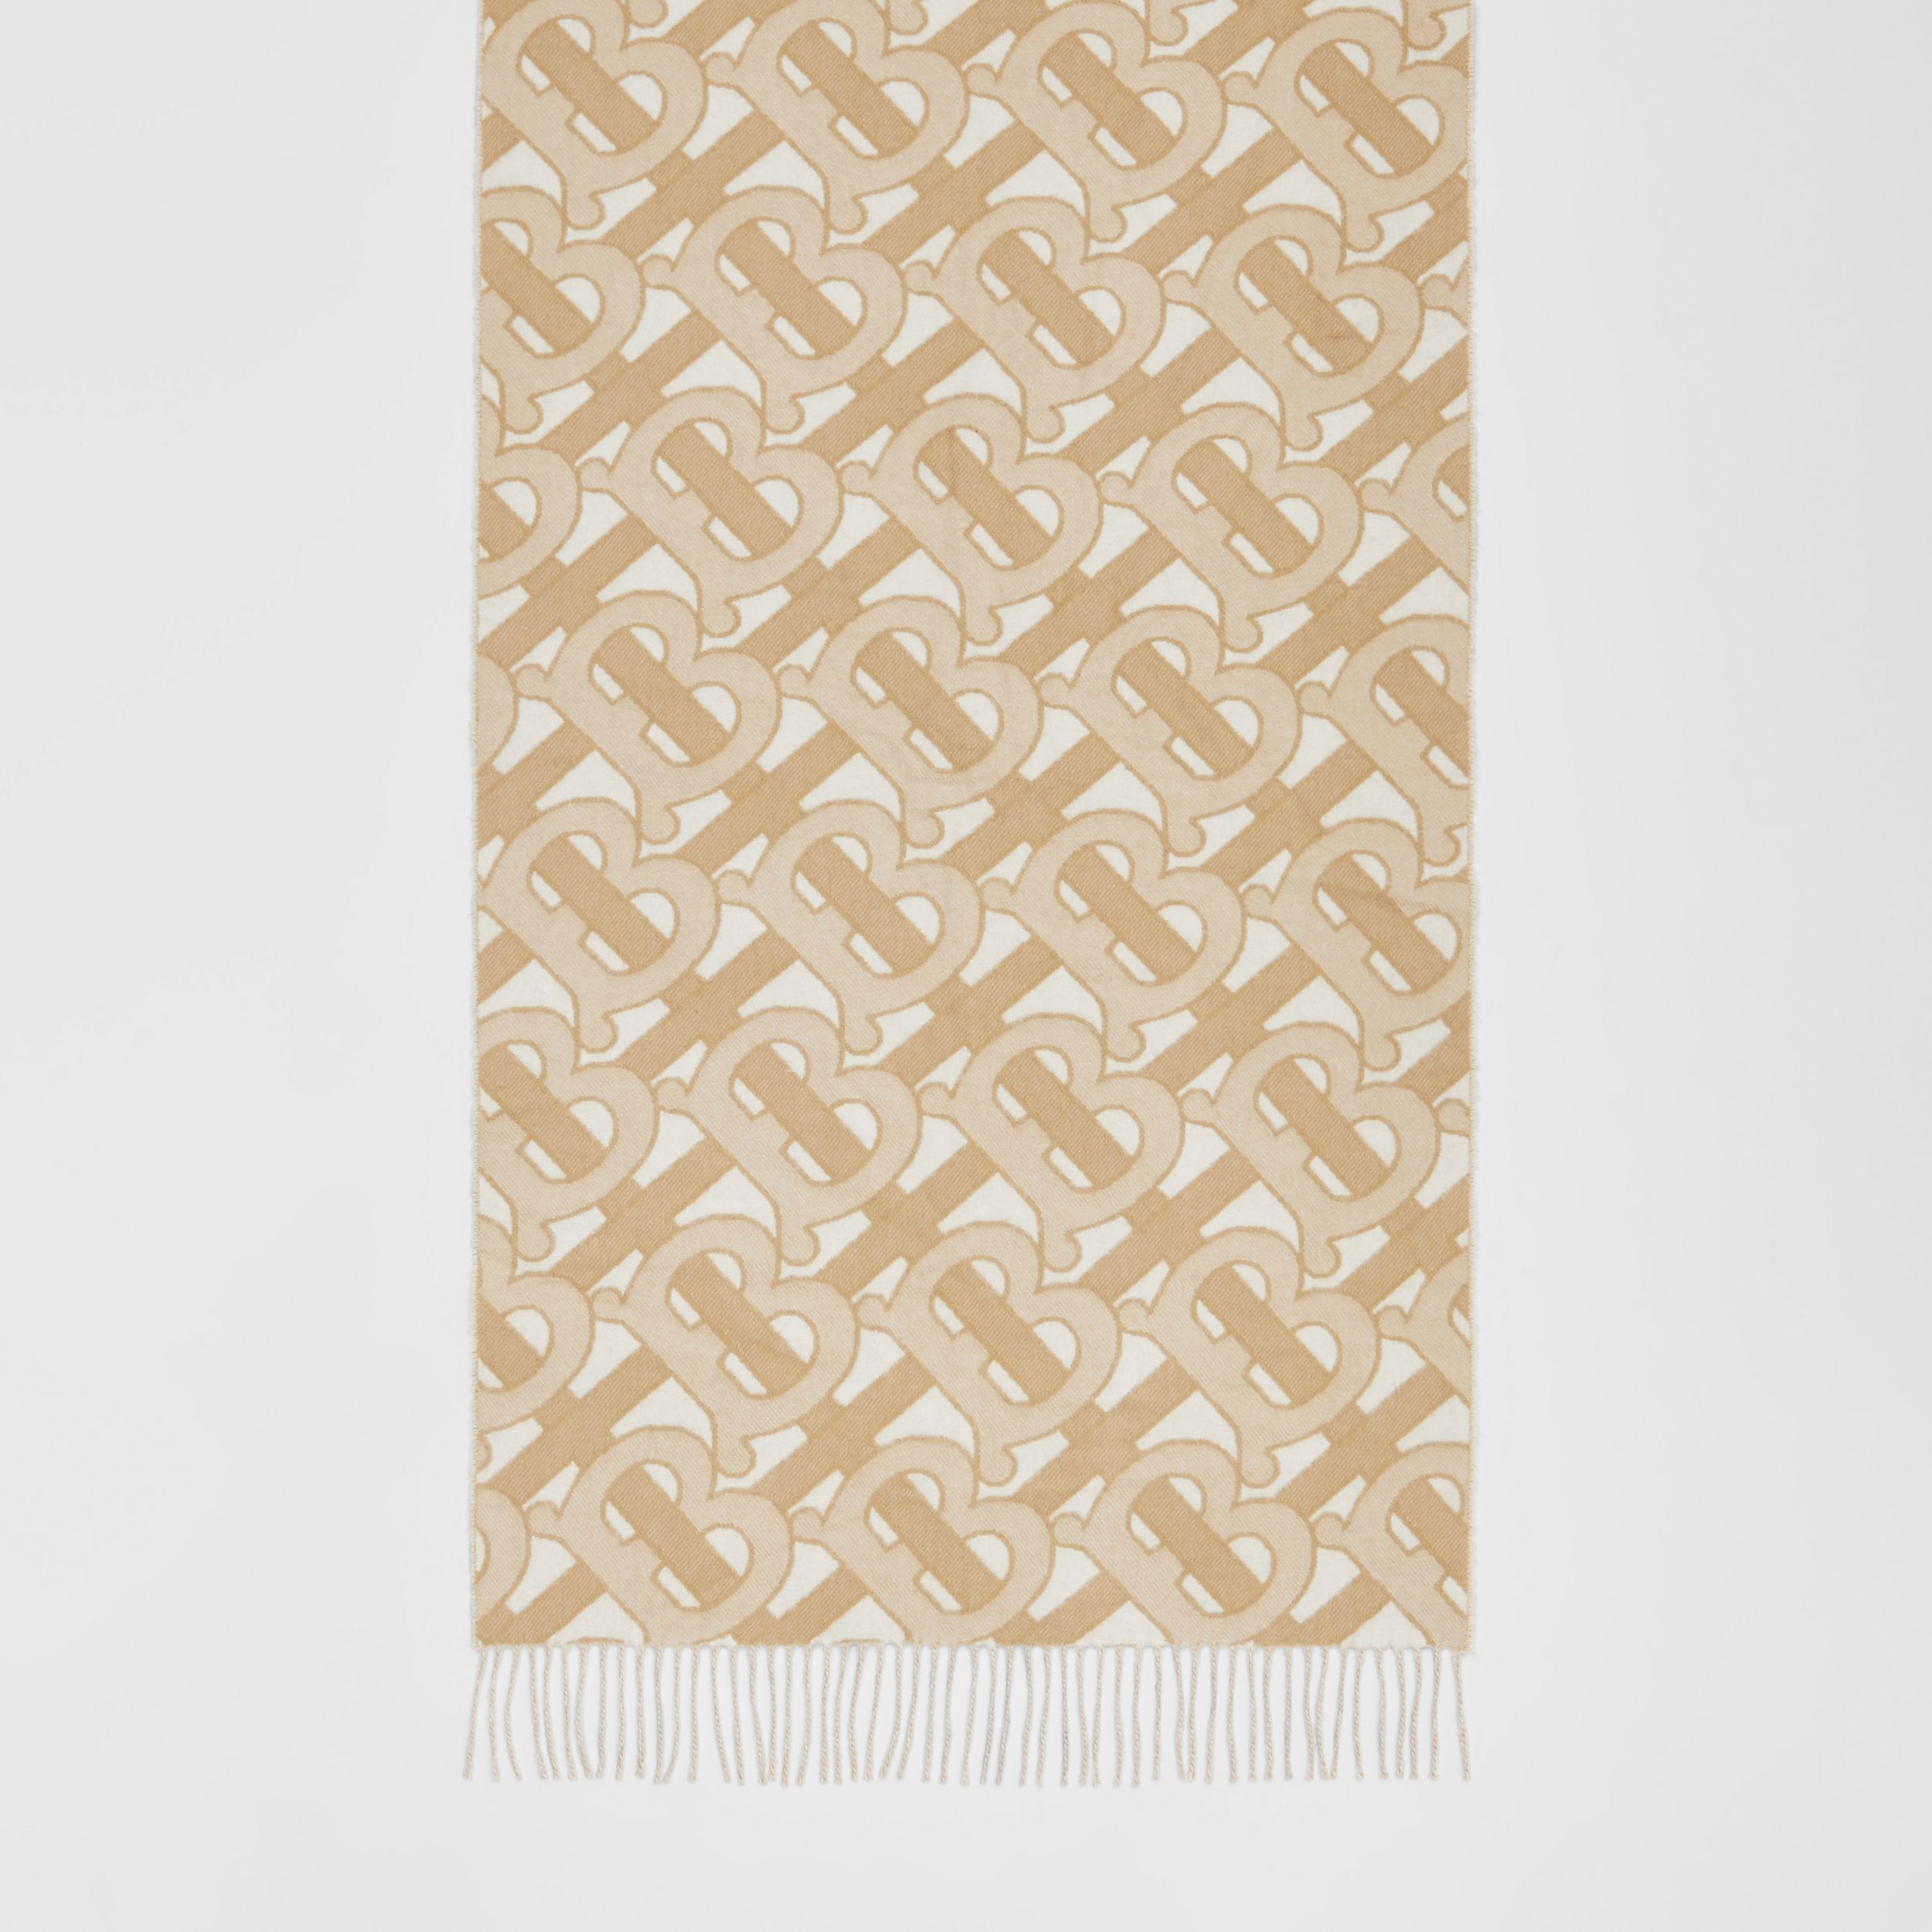 Monogram Cashmere Jacquard Scarf in Light Sand | Burberry Australia - 4